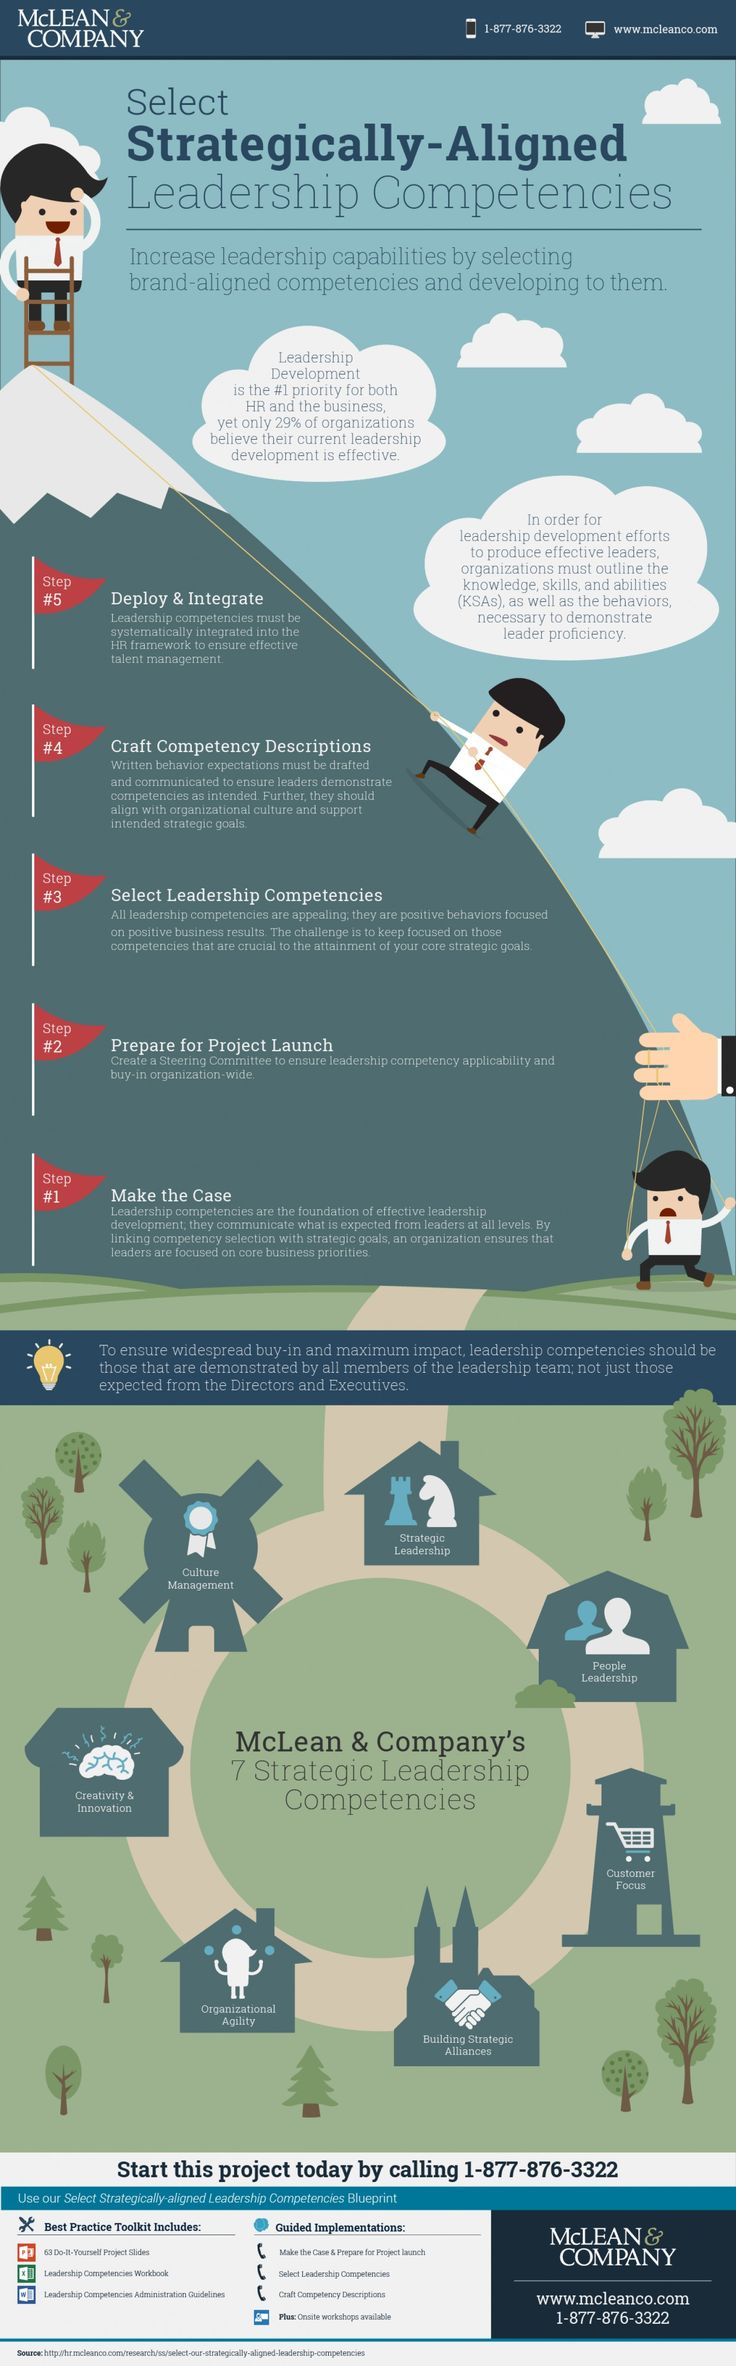 Select Strategically-Aligned Leadership Competencies Infographic                                                                                                                                                      More